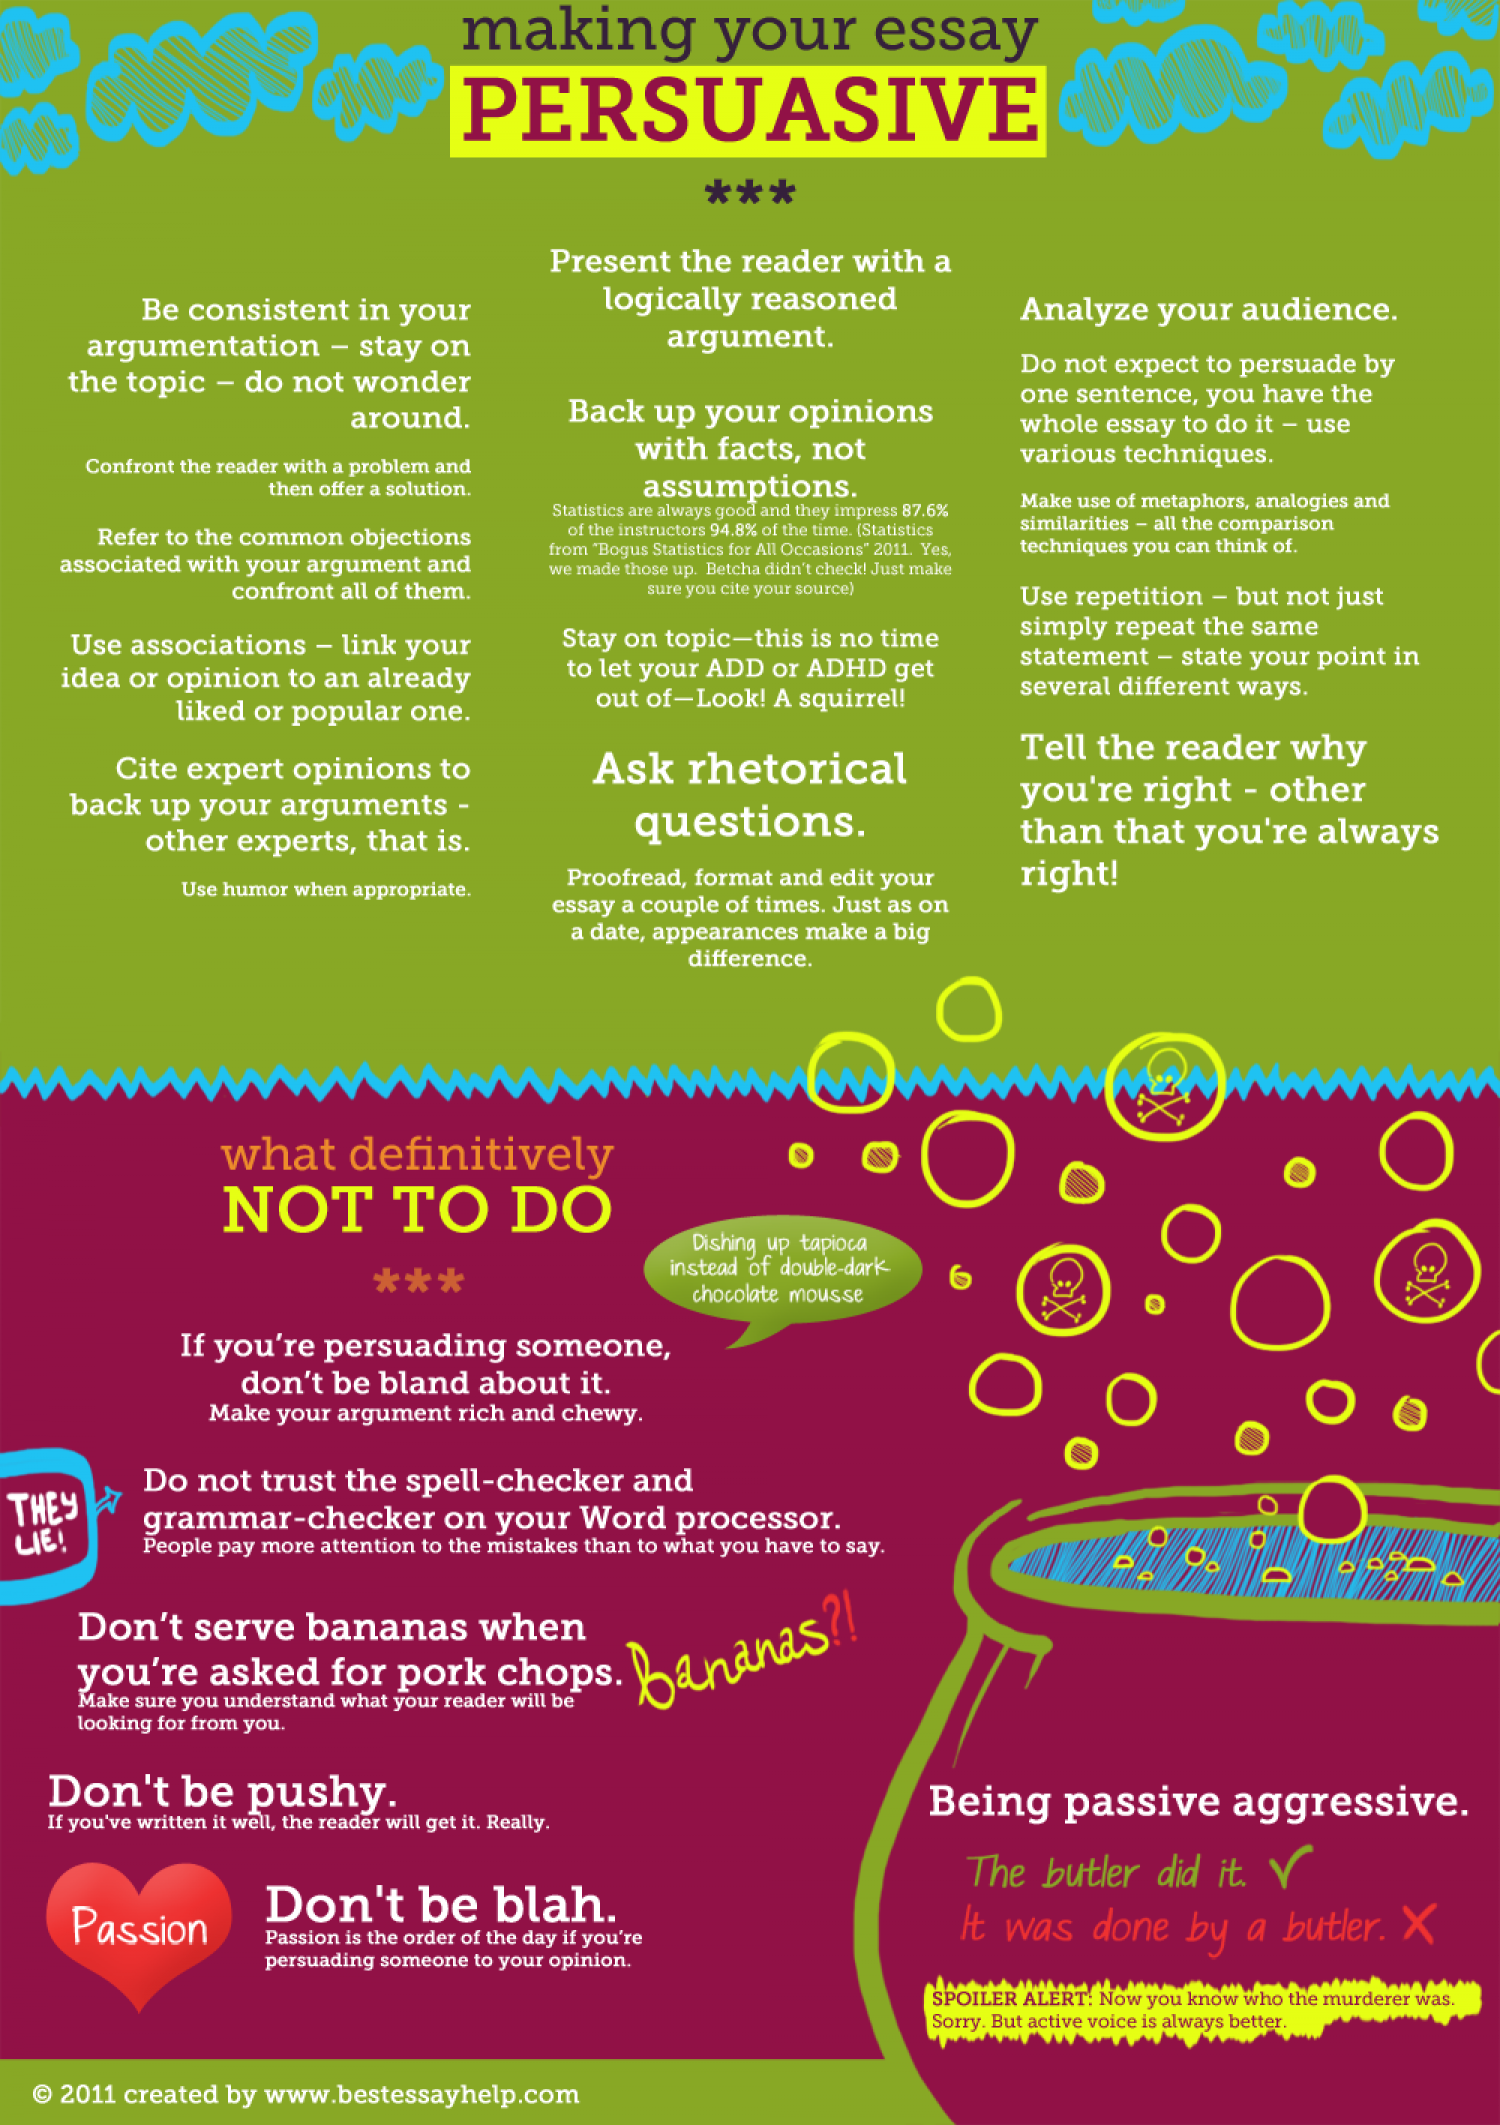 writing persuasive essay infographic ingl writing persuasive essay infographic